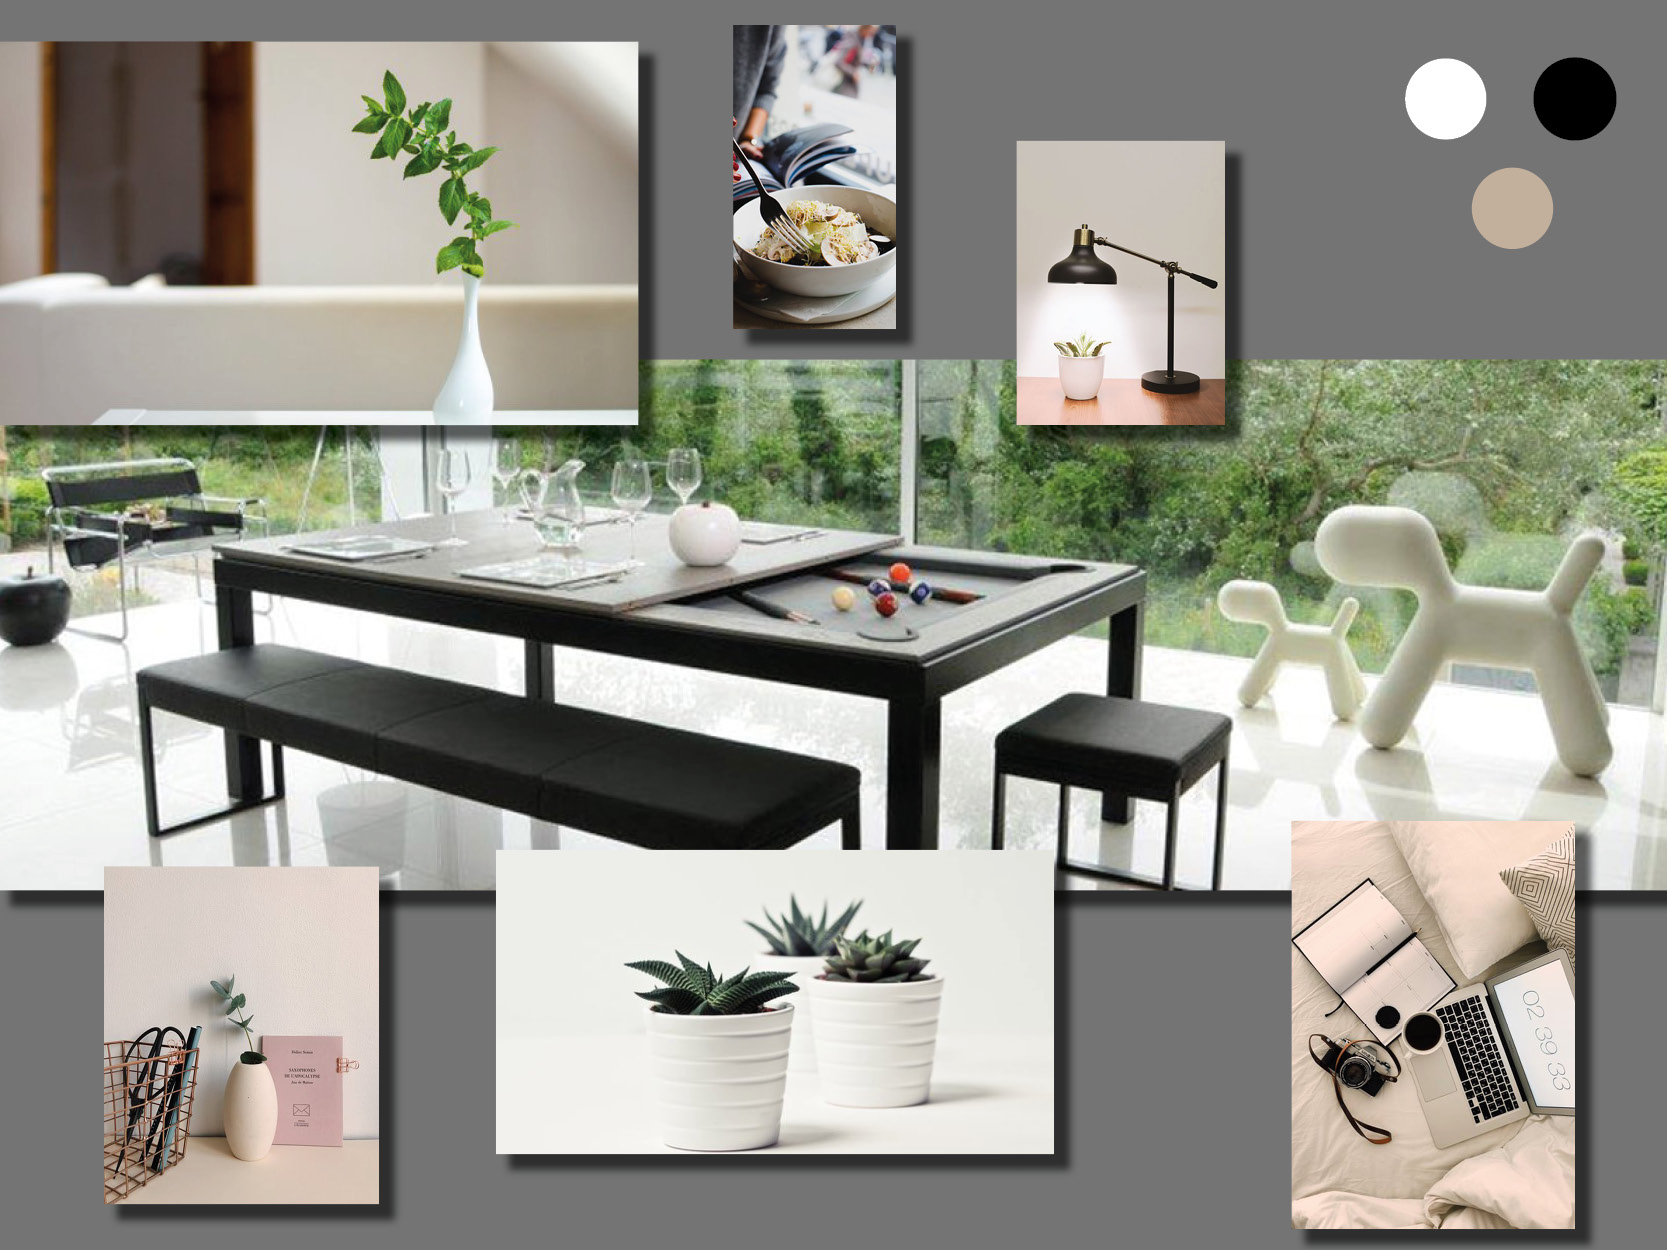 Planche tendance style moderne